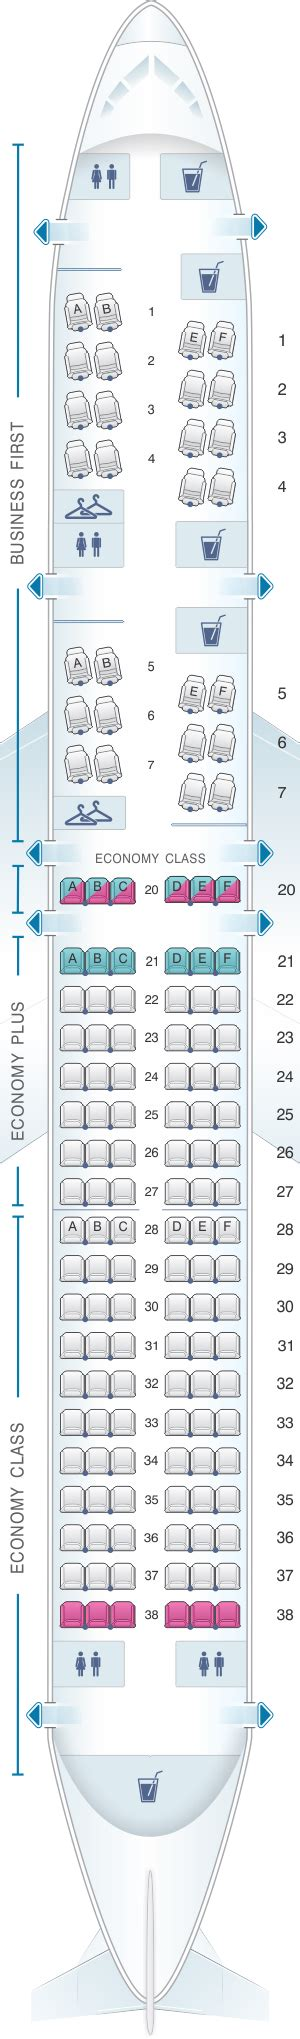 boeing 757 200 seats seat map united airlines boeing b757 200 752 version 2